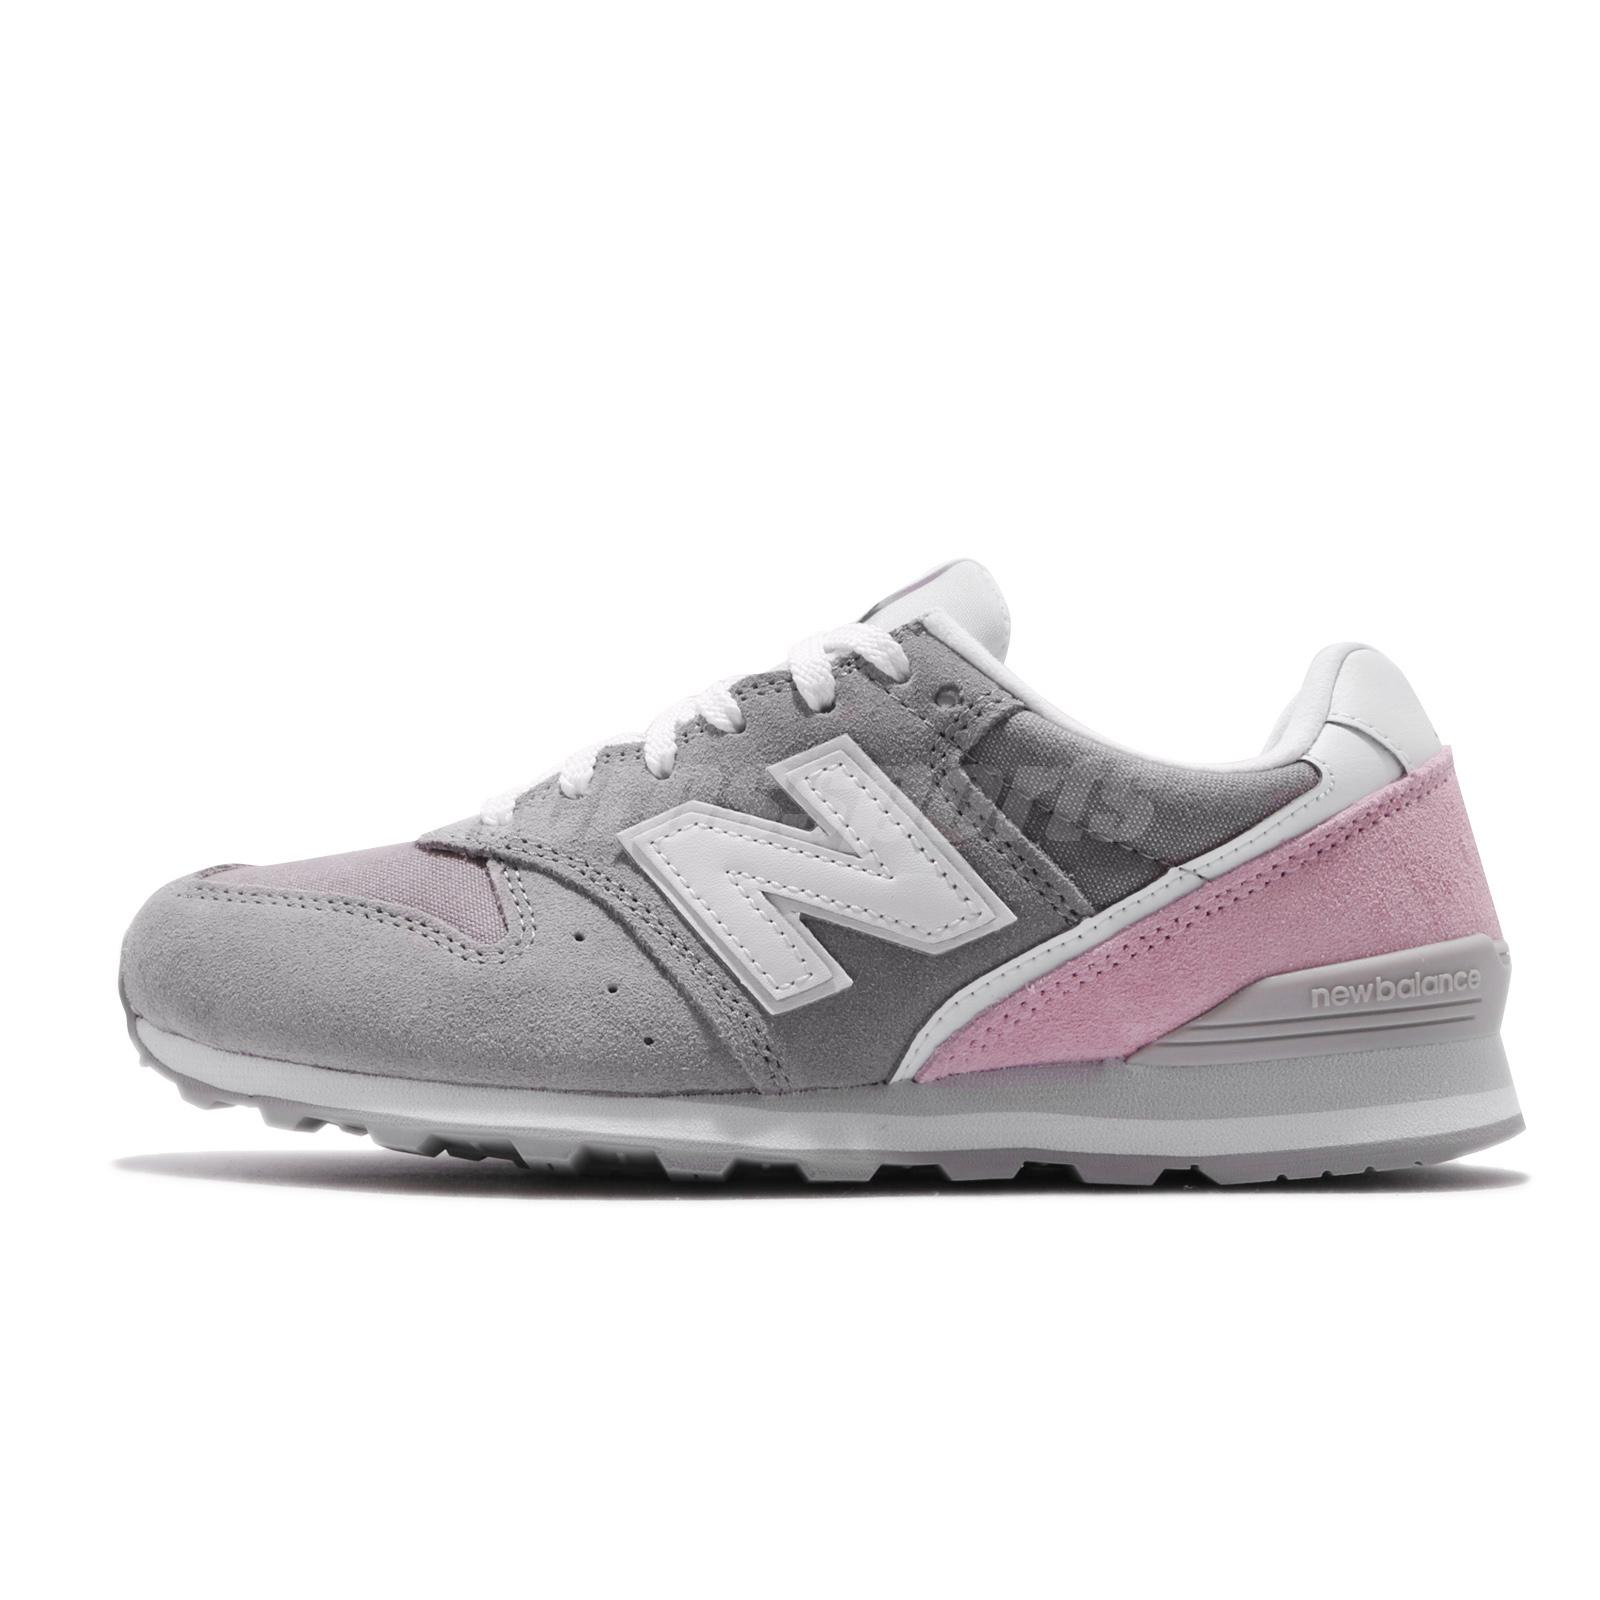 Details about New Balance WL996 D Wide Grey Suede Pink Womens Retro Running  Shoes NB WL996BCD